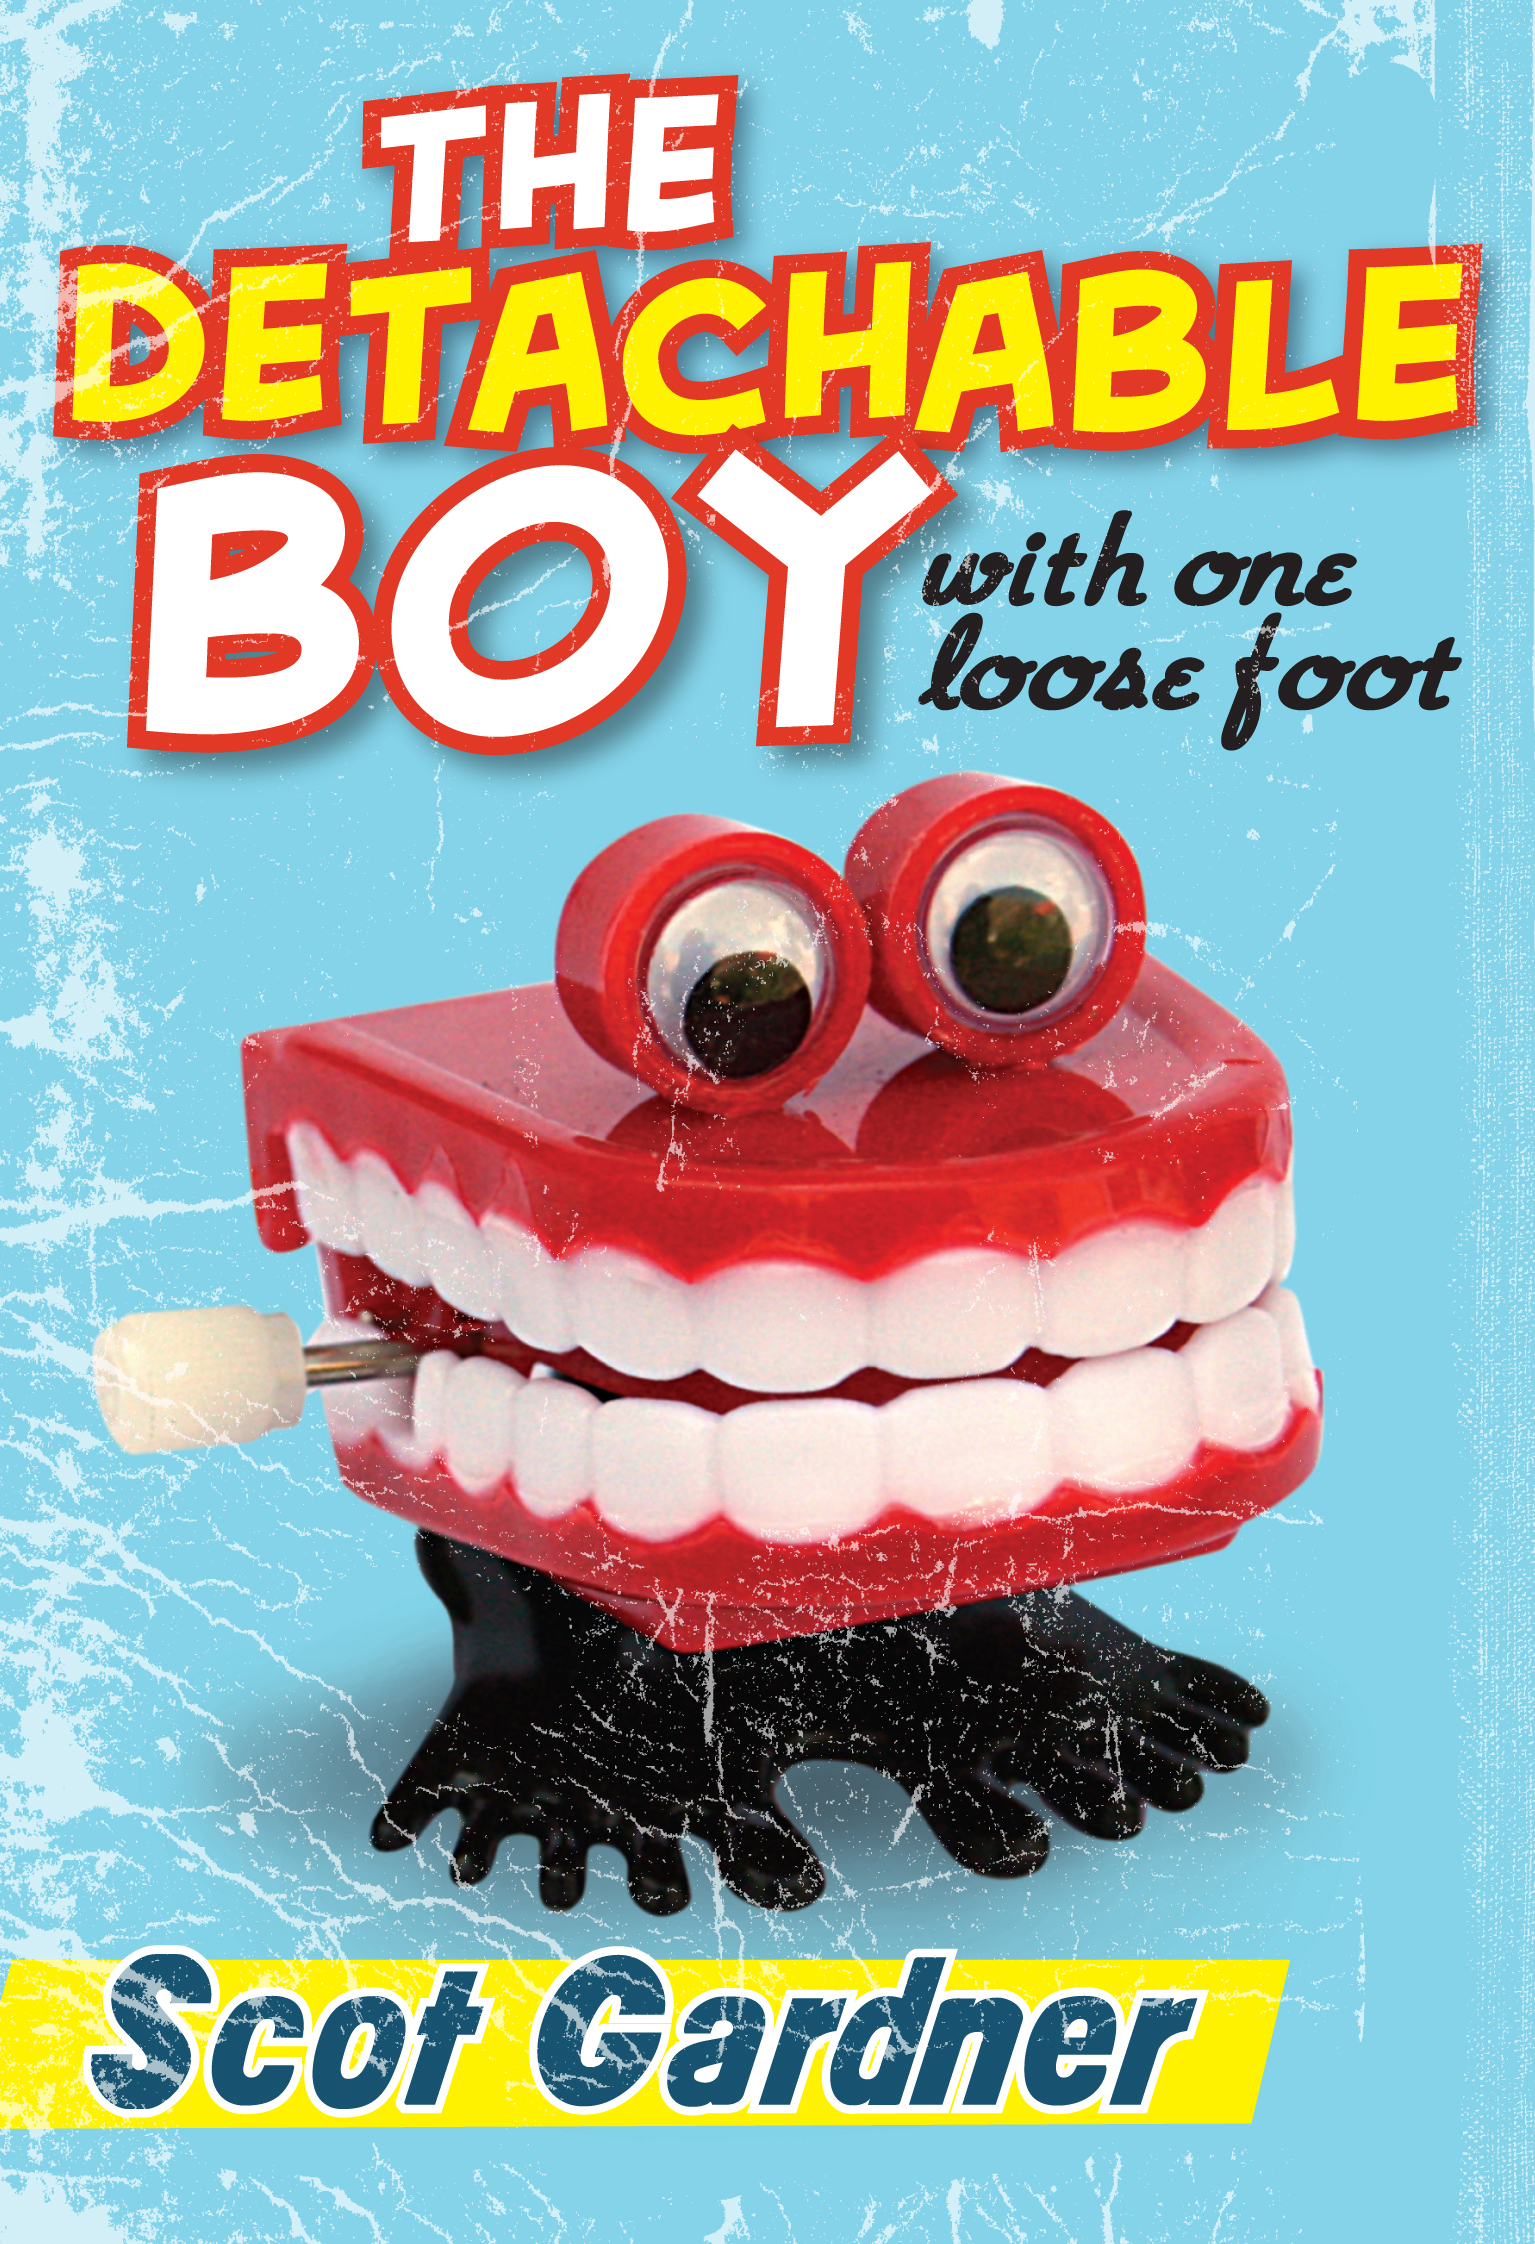 Cover Art for The Detachable Boy, ISBN: 9781741753455